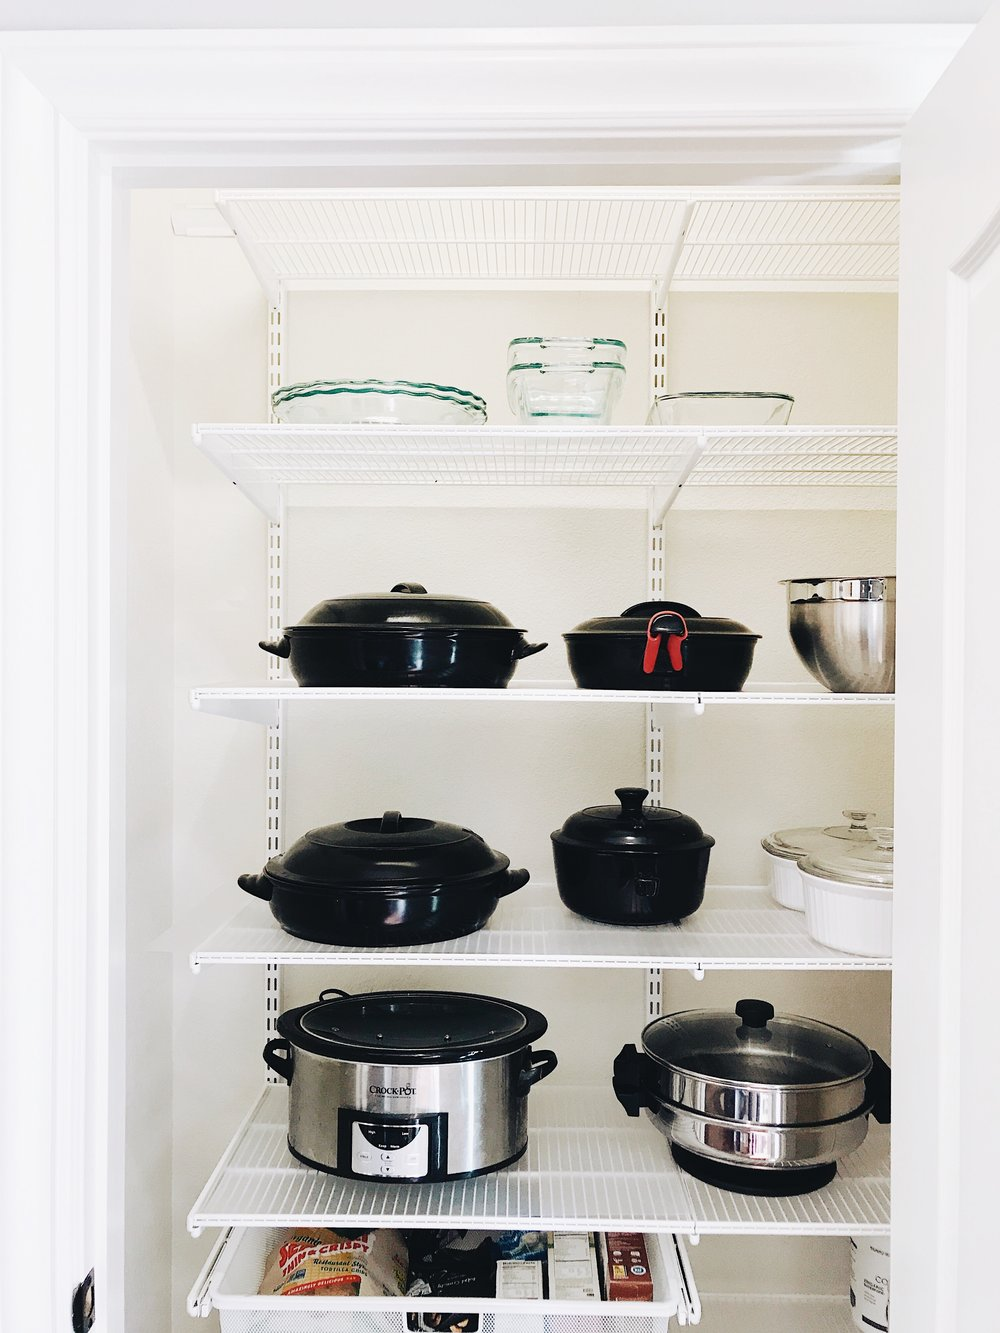 I wouldn't have put the pots and pans in the pantry myself but I'm loving it all!